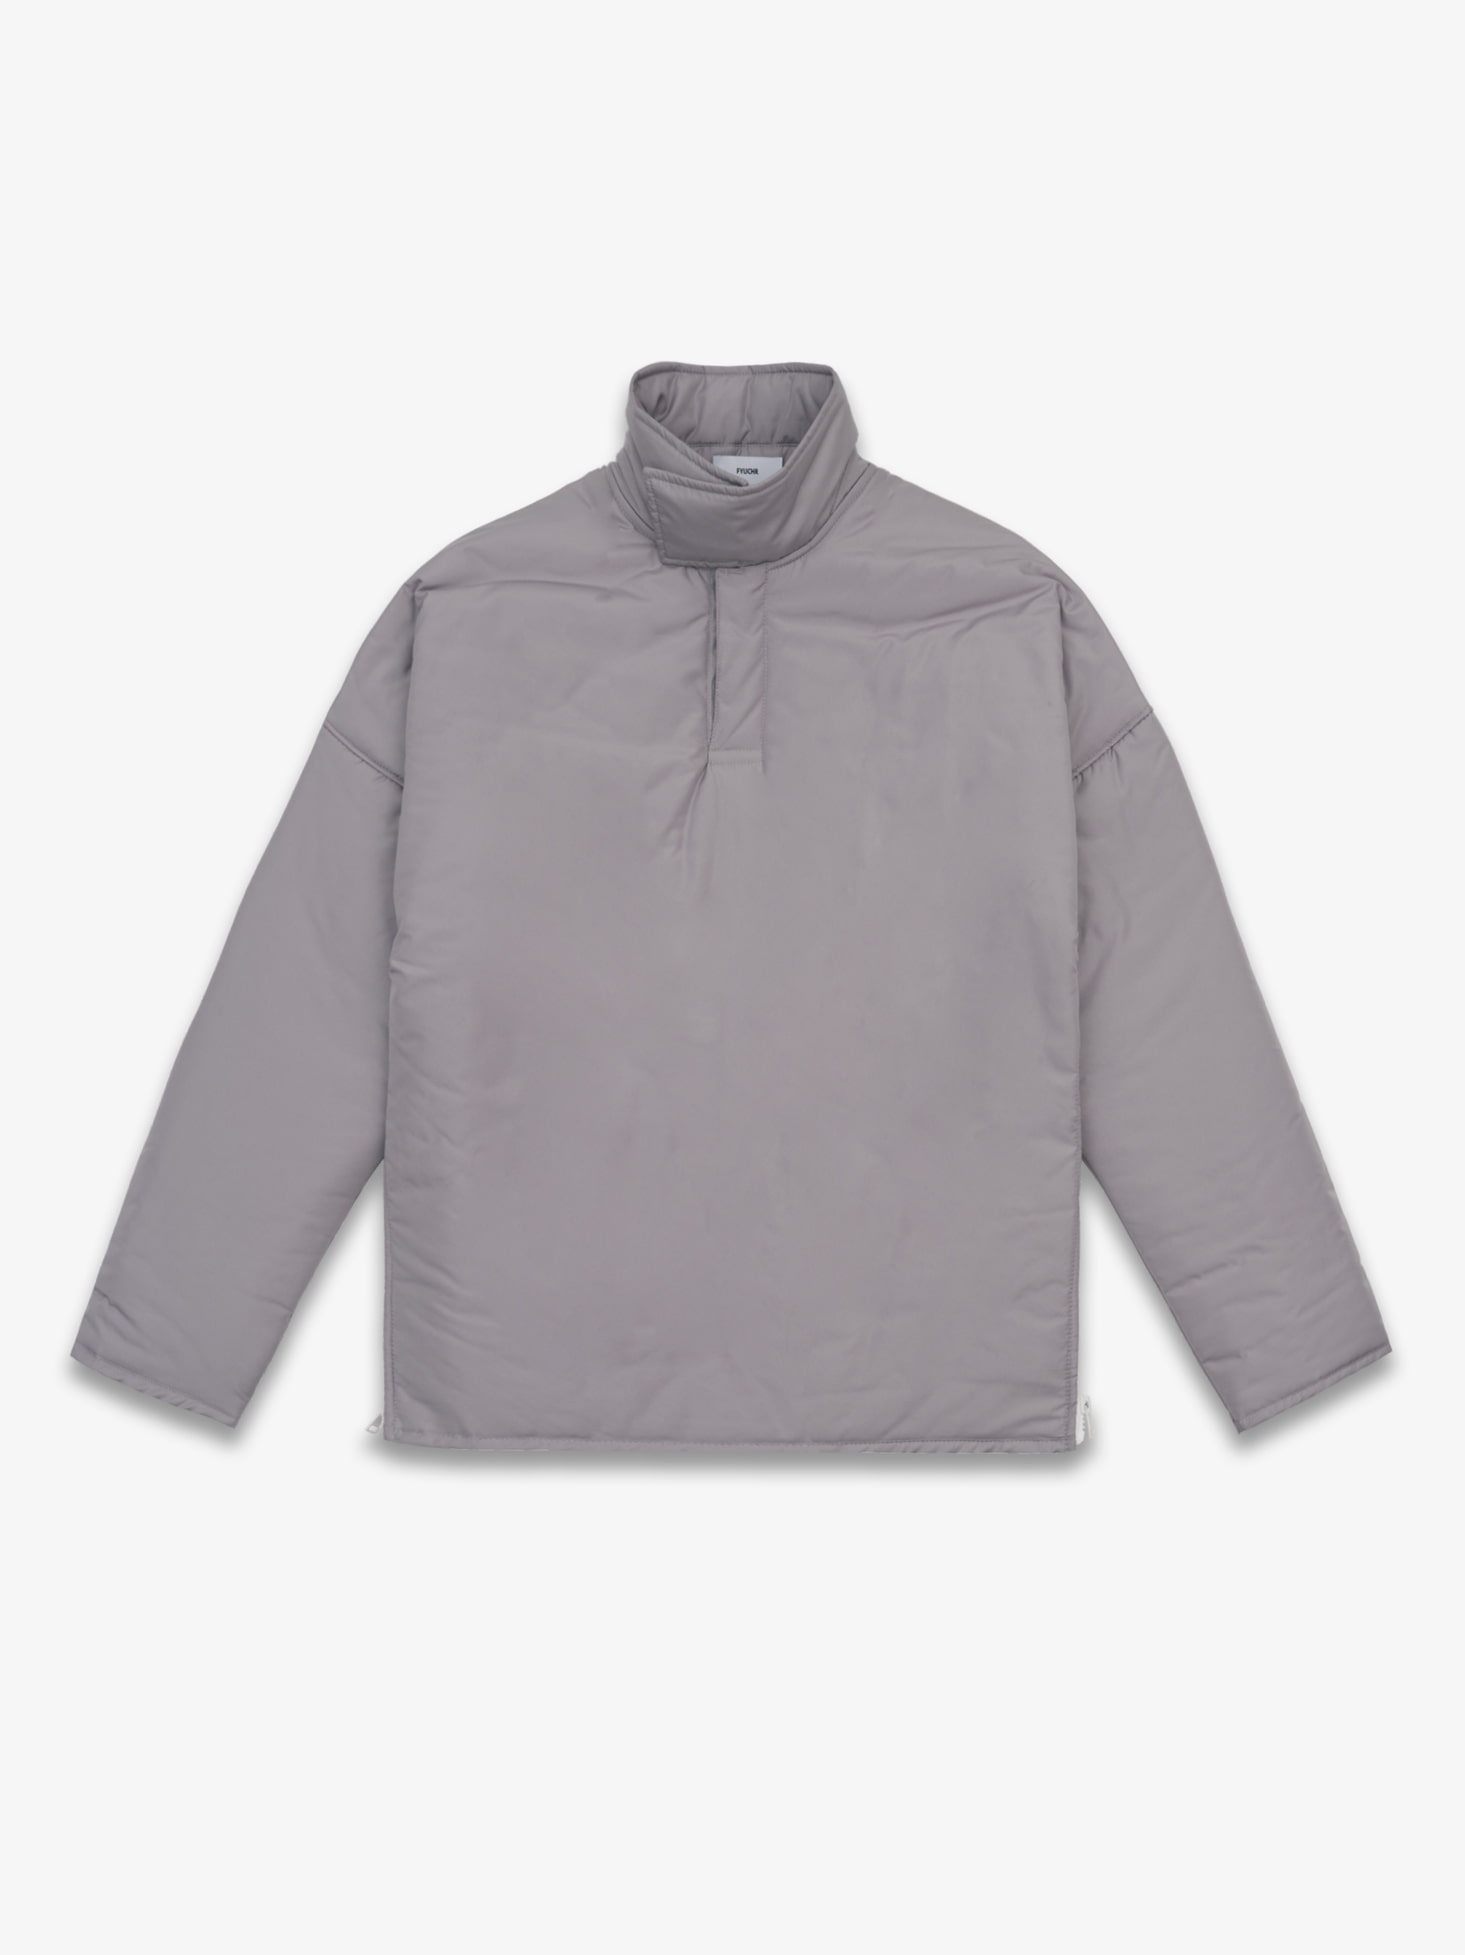 HIGH NECK PULLOVER (PURPLE GREY) 시즌오프 60% 특별할인 120,000원 ->